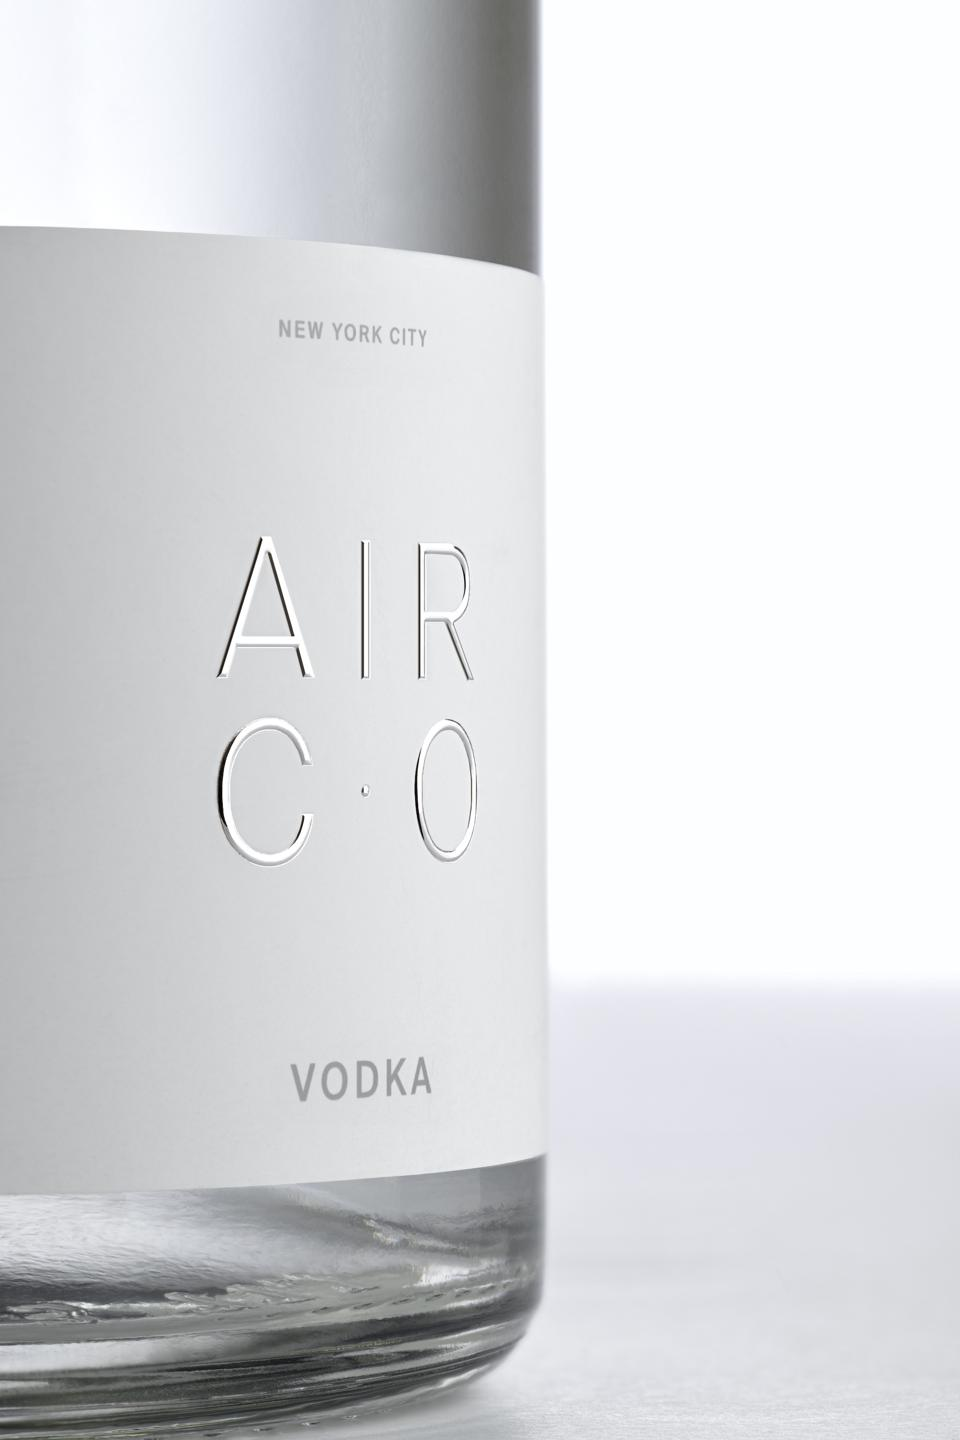 The Air Co. bottle